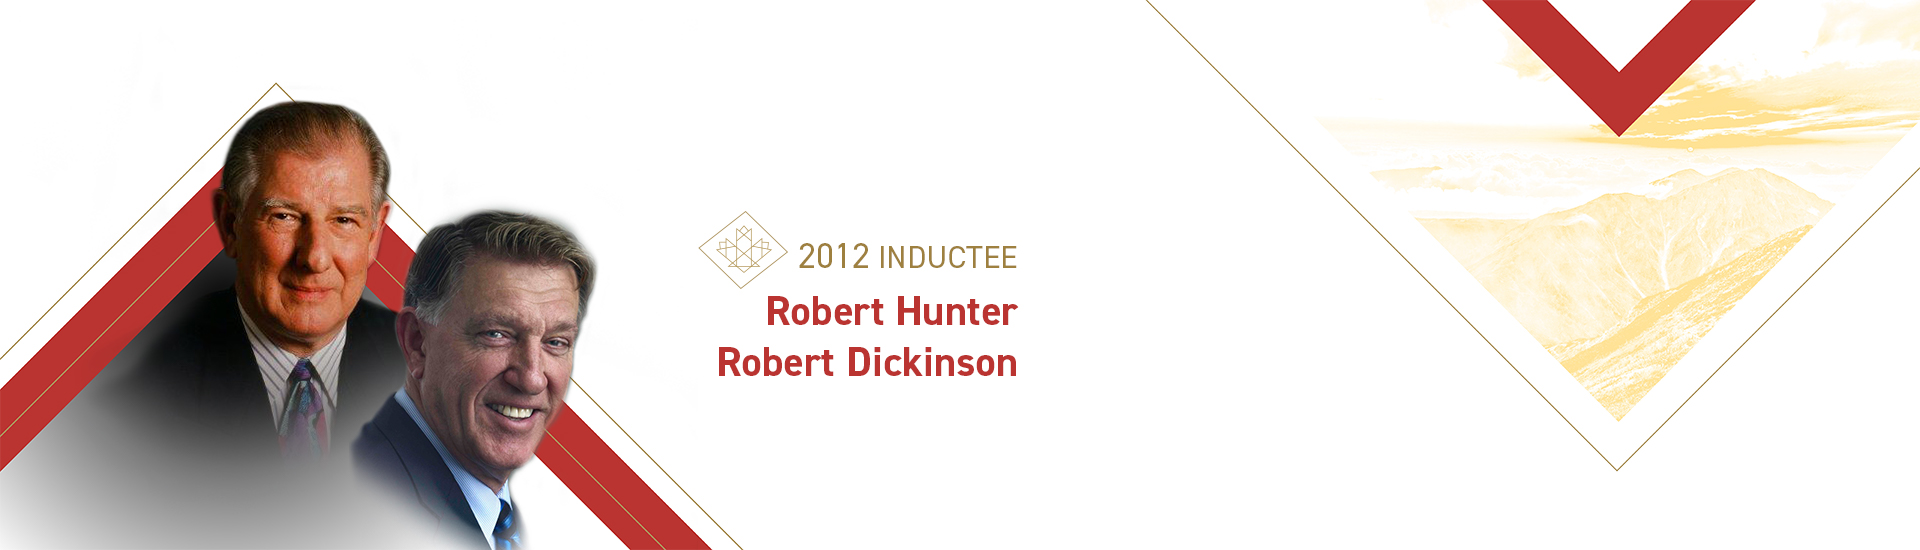 Robert Hunter (1927 – 2007) and Robert Dickinson (b. 1948)